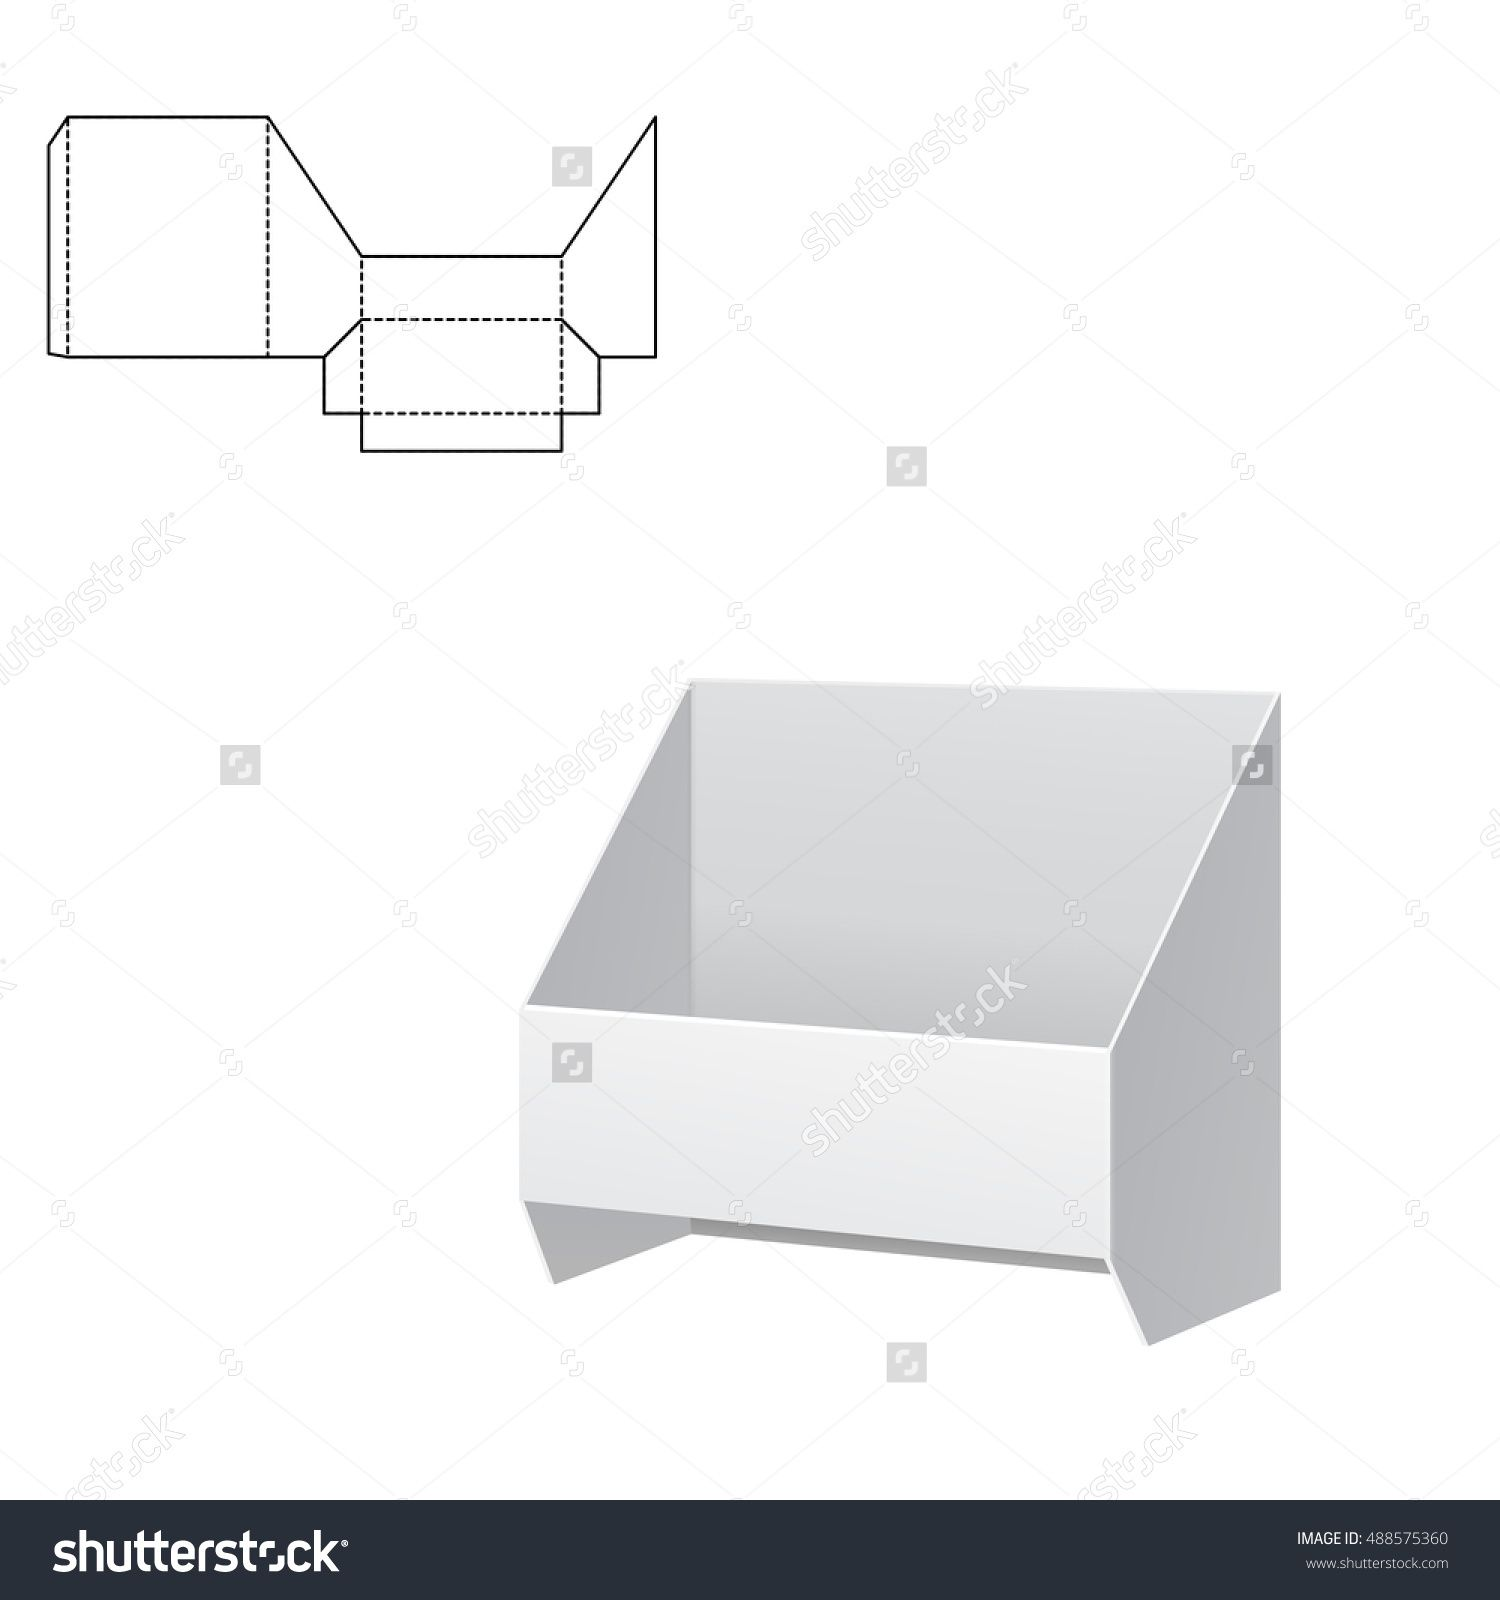 Vector illustration of diecut craft box for design website vector illustration of diecut craft box for design website background banner retail jeuxipadfo Gallery